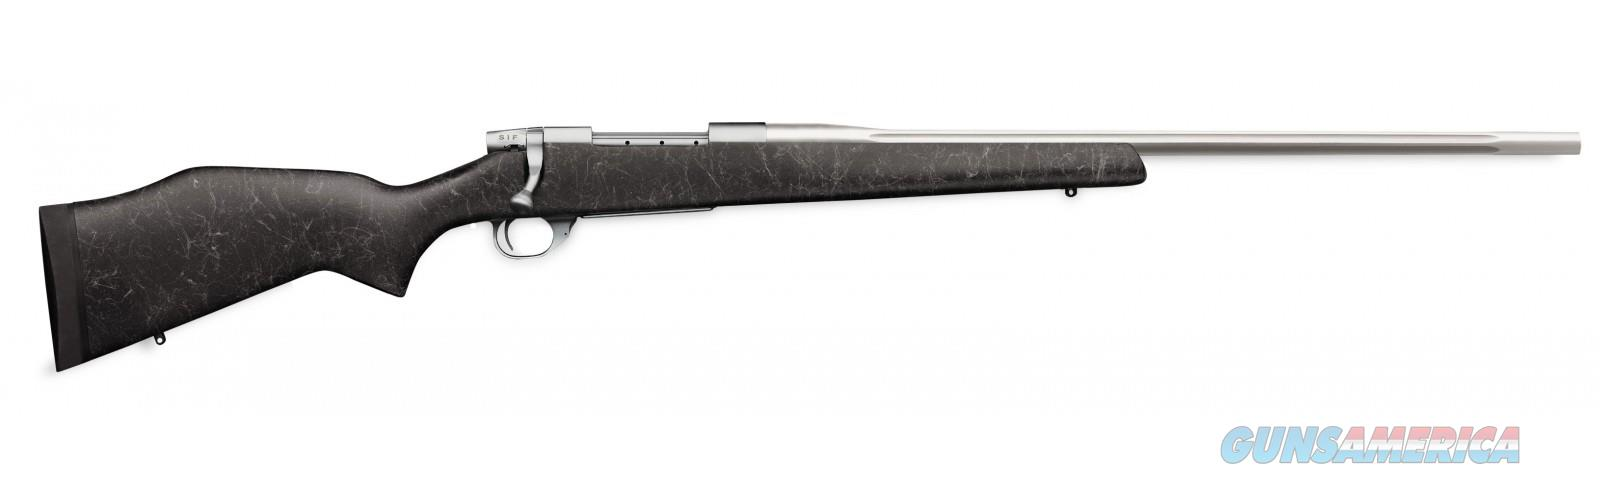 Weatherby Vanguard Accuguard .257 Wby Magnum VCC257WR4O  Guns > Rifles > Weatherby Rifles > Sporting